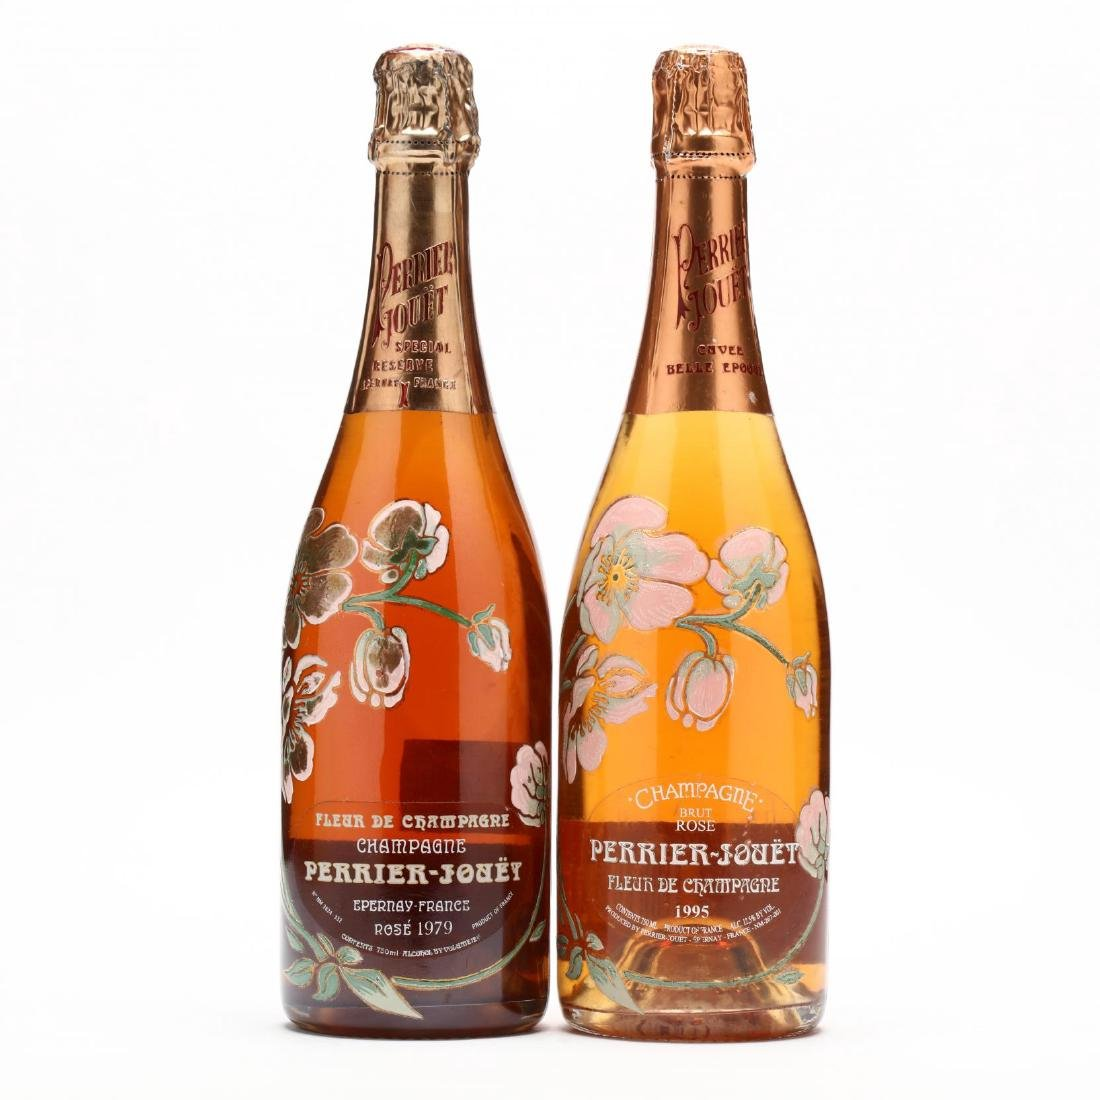 1979 & 1995 Perrier-Jouet Champagne